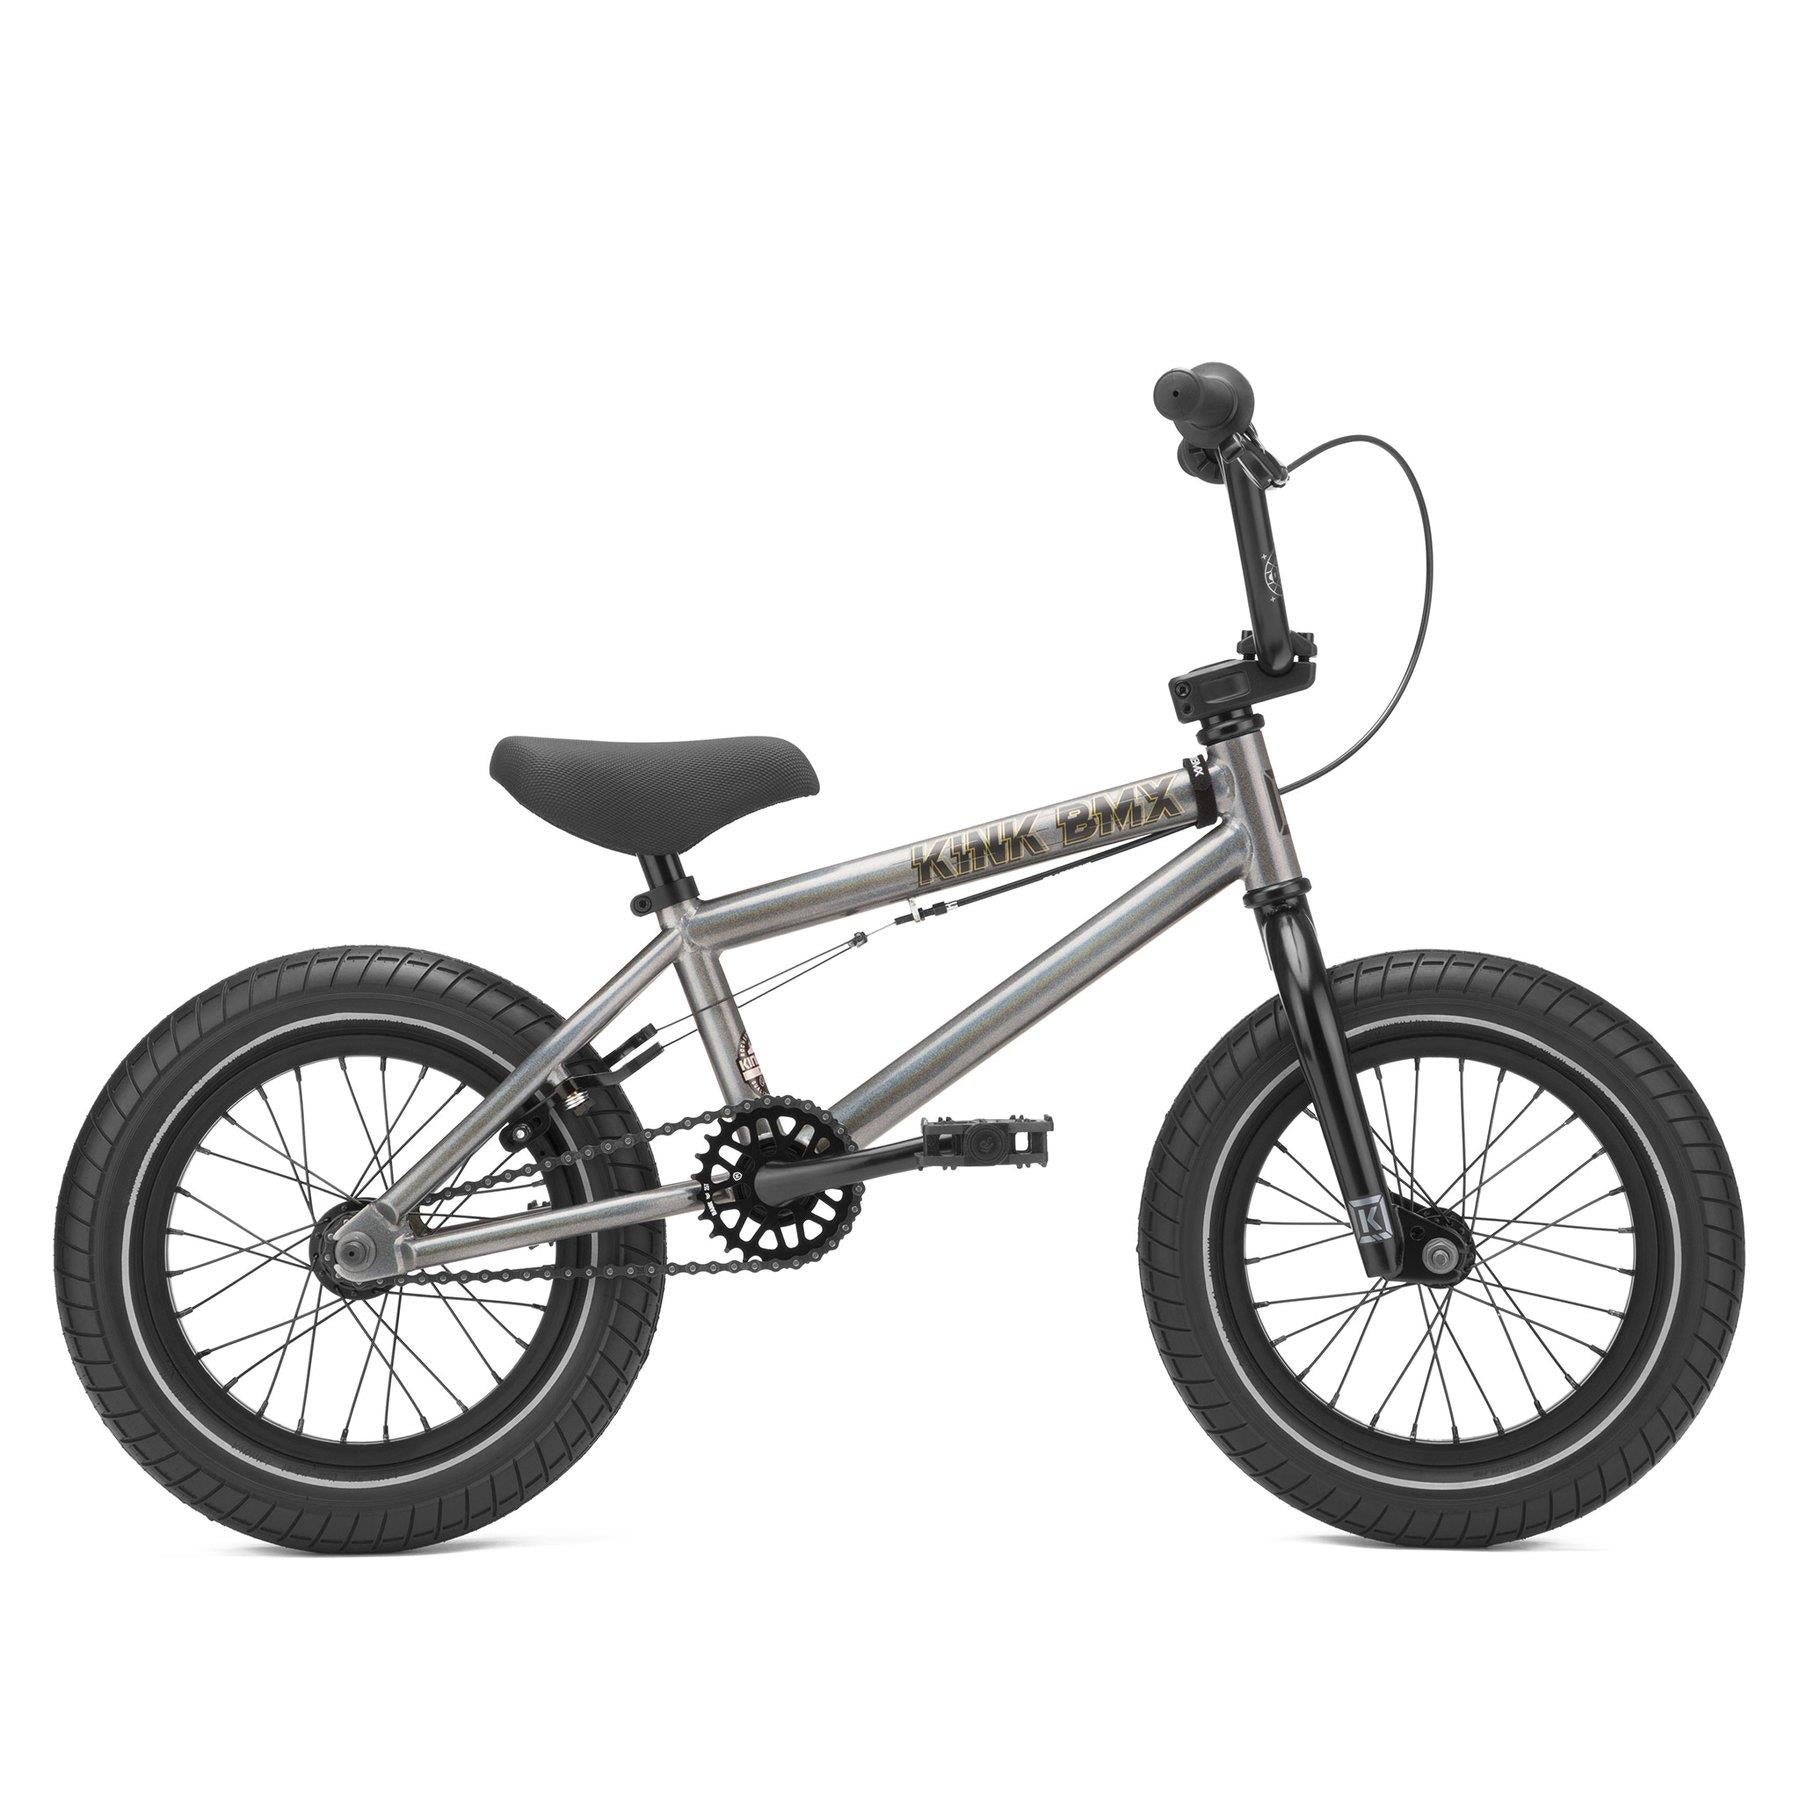 "Kink Pump 14"" BMX Bike 2021"